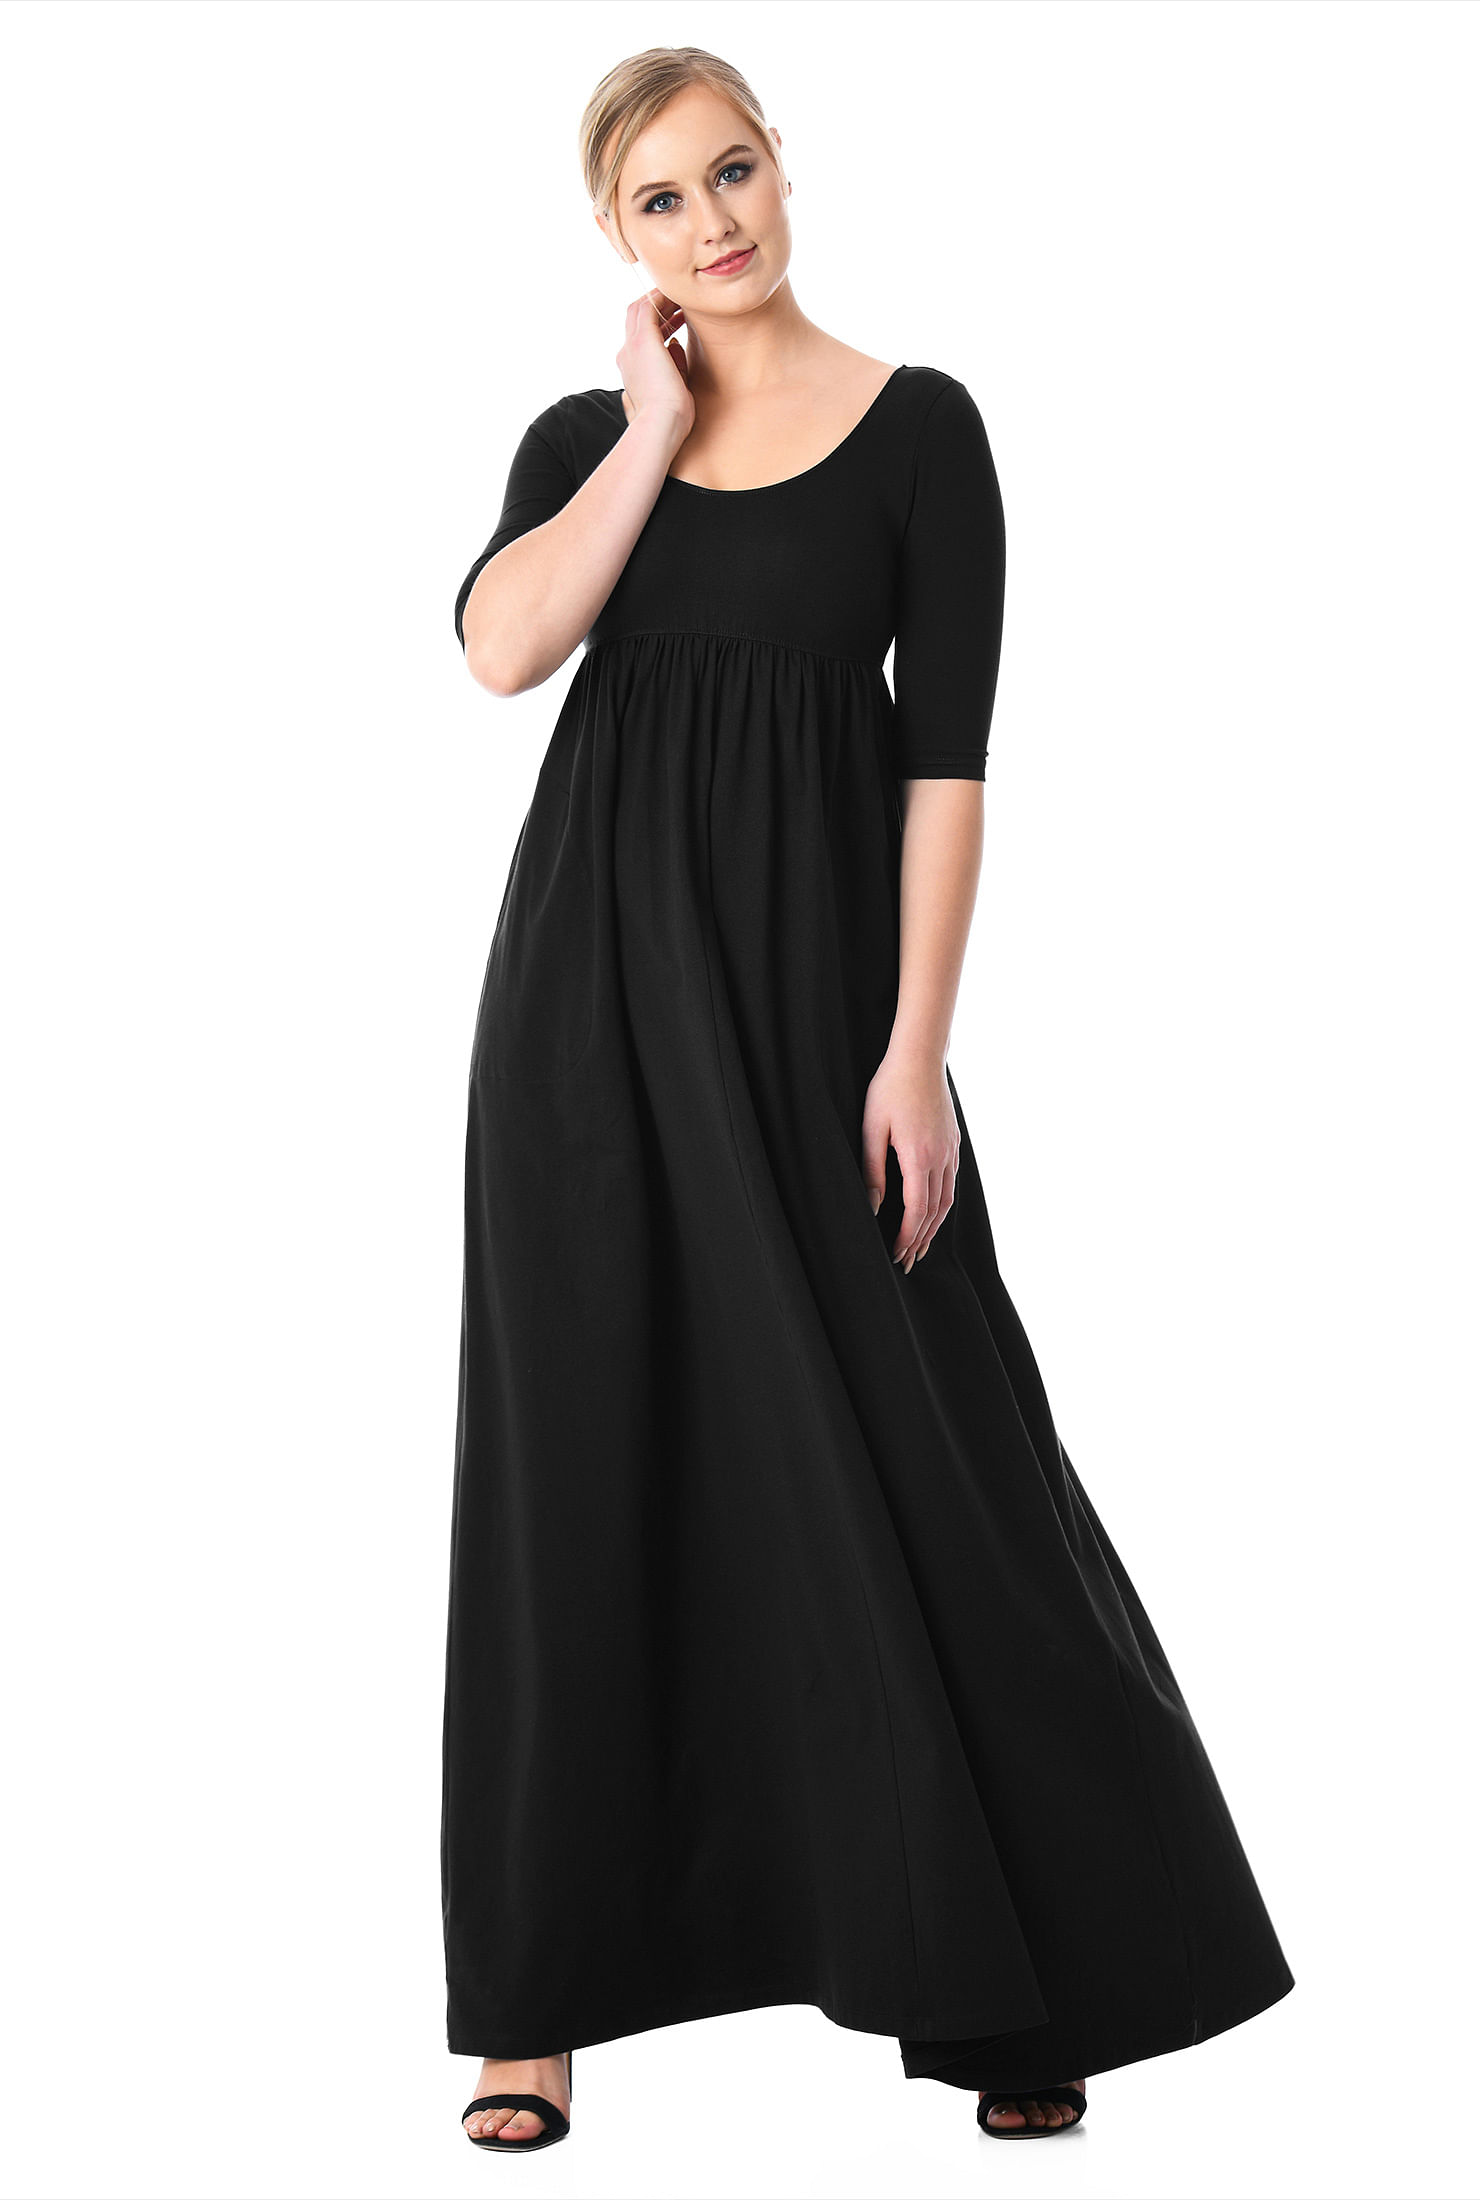 51d970db3908 ... Cotton knit empire maxi dress. , back zip dresses, black dresses,  cotton/spandex Dresses, elbow length sleeve